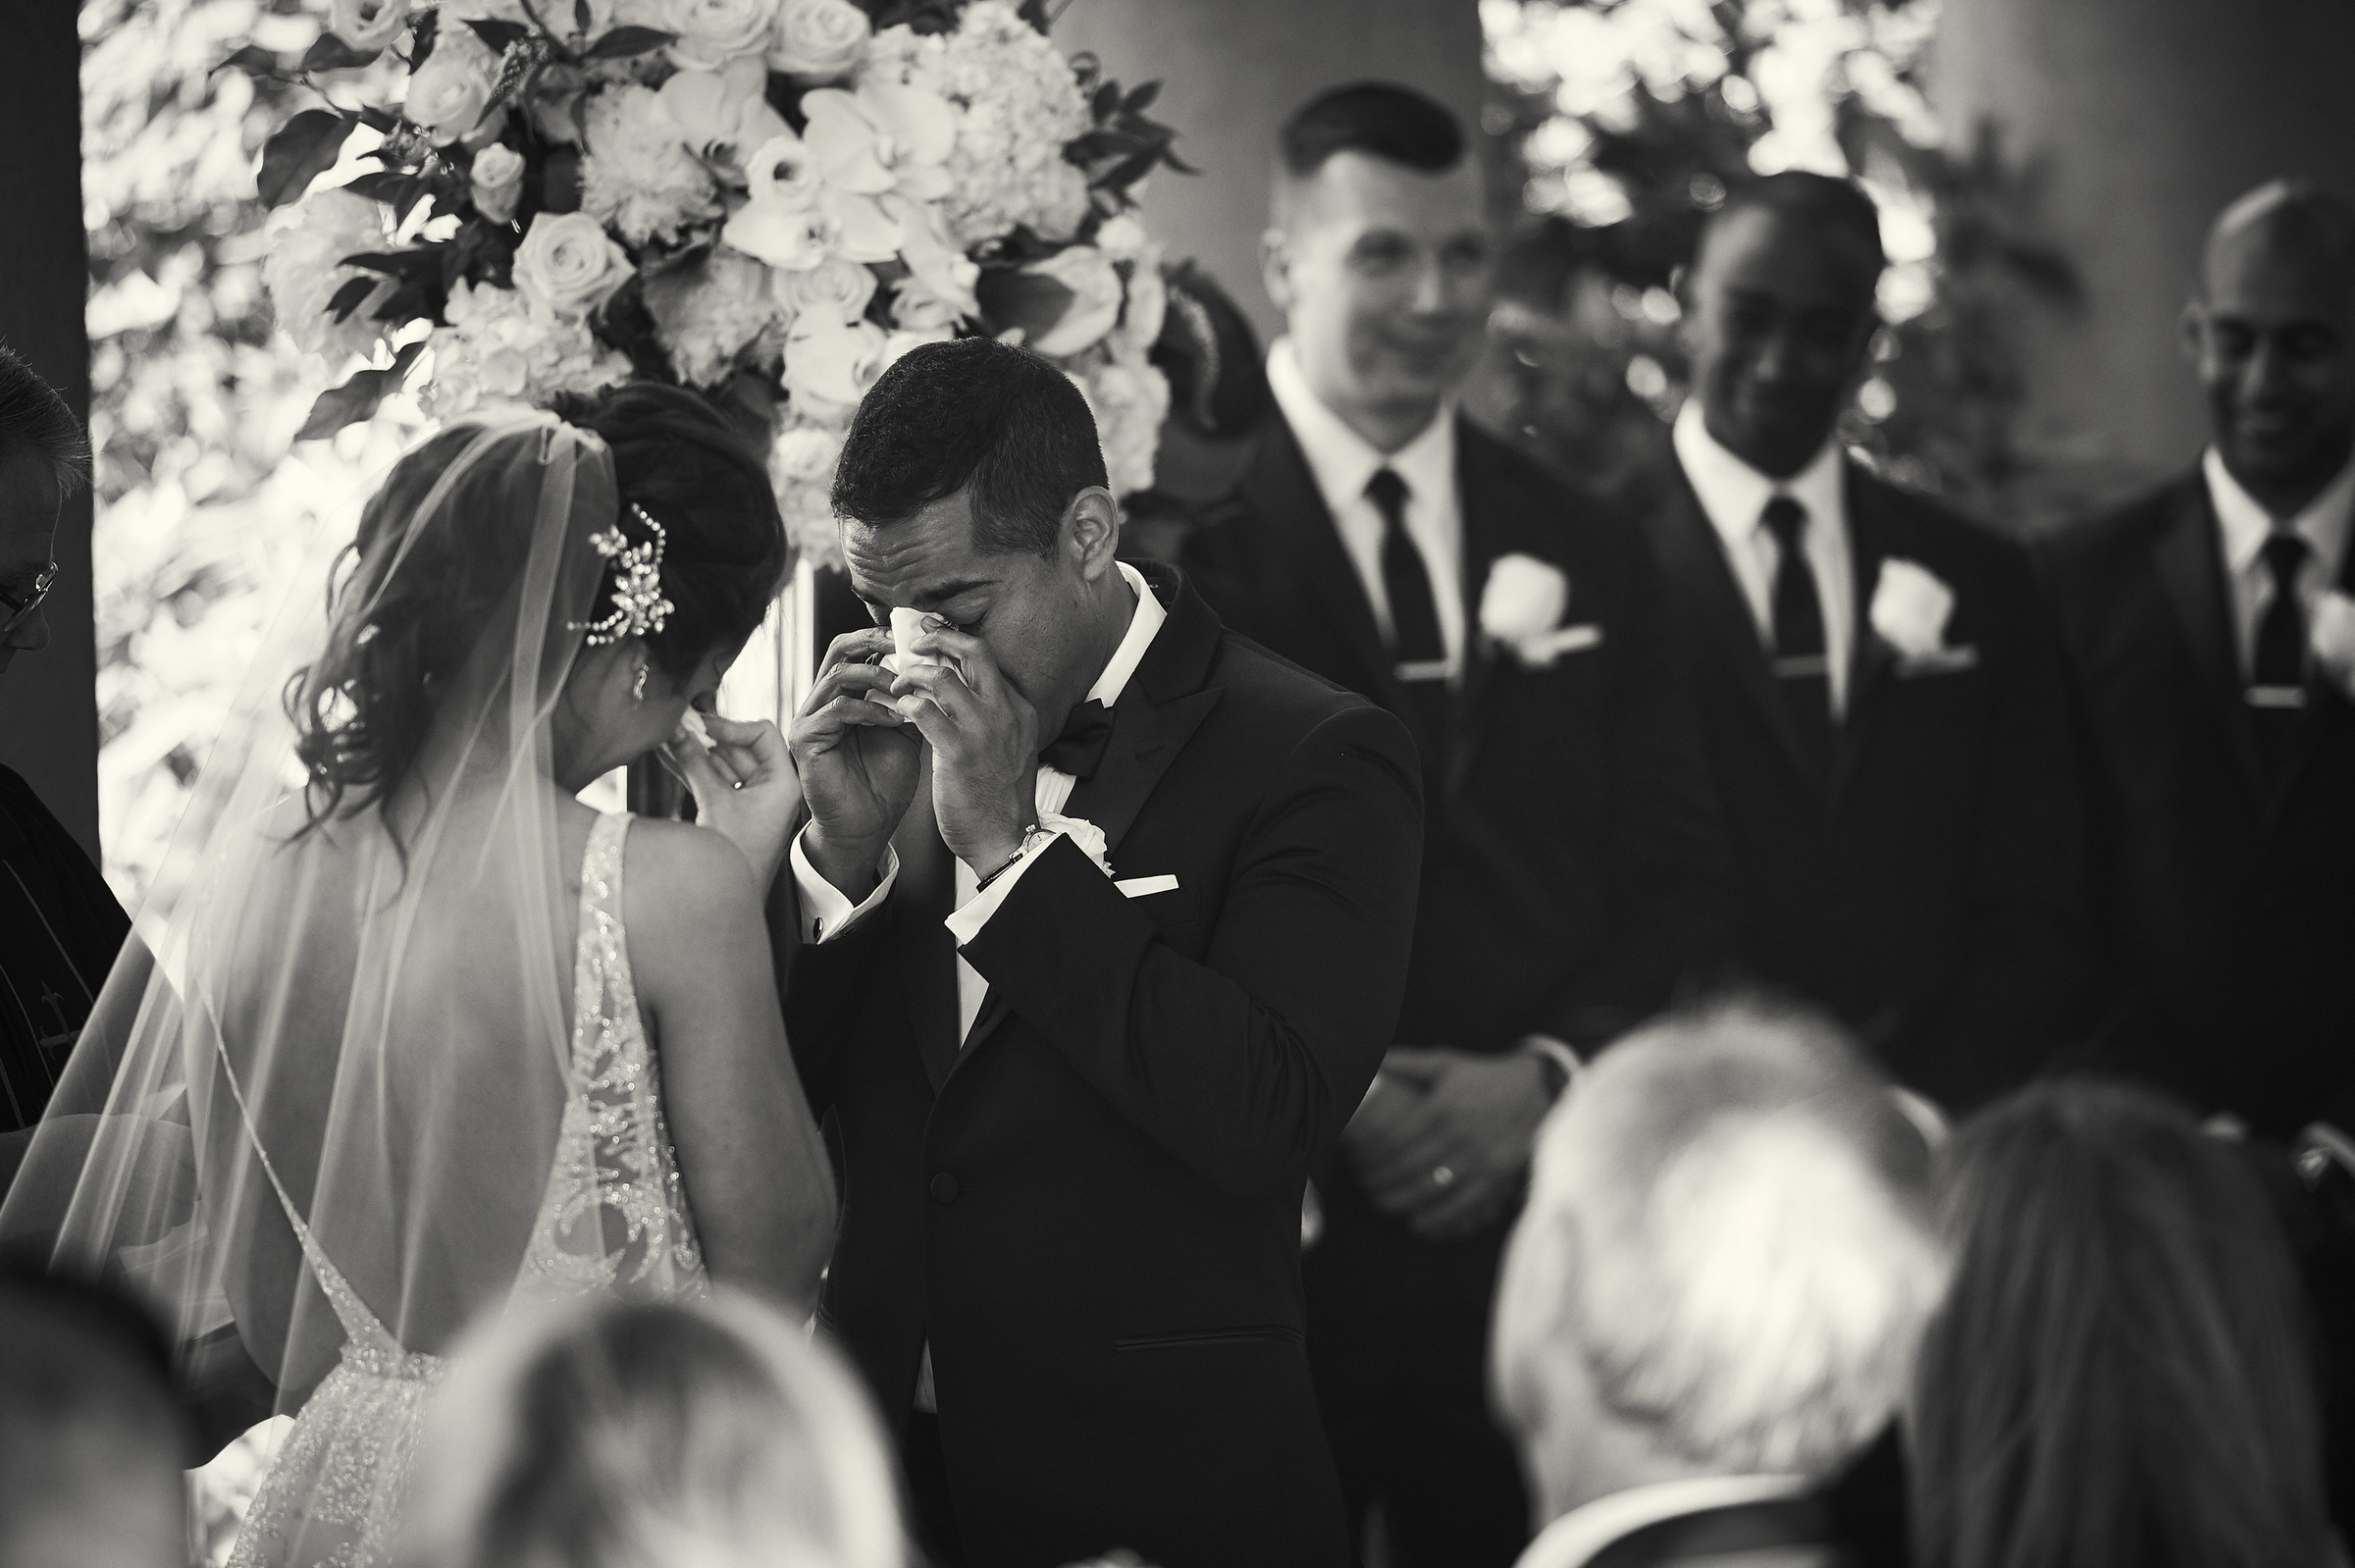 Tearful bride and groom - photo by Jozef Povazan Photography